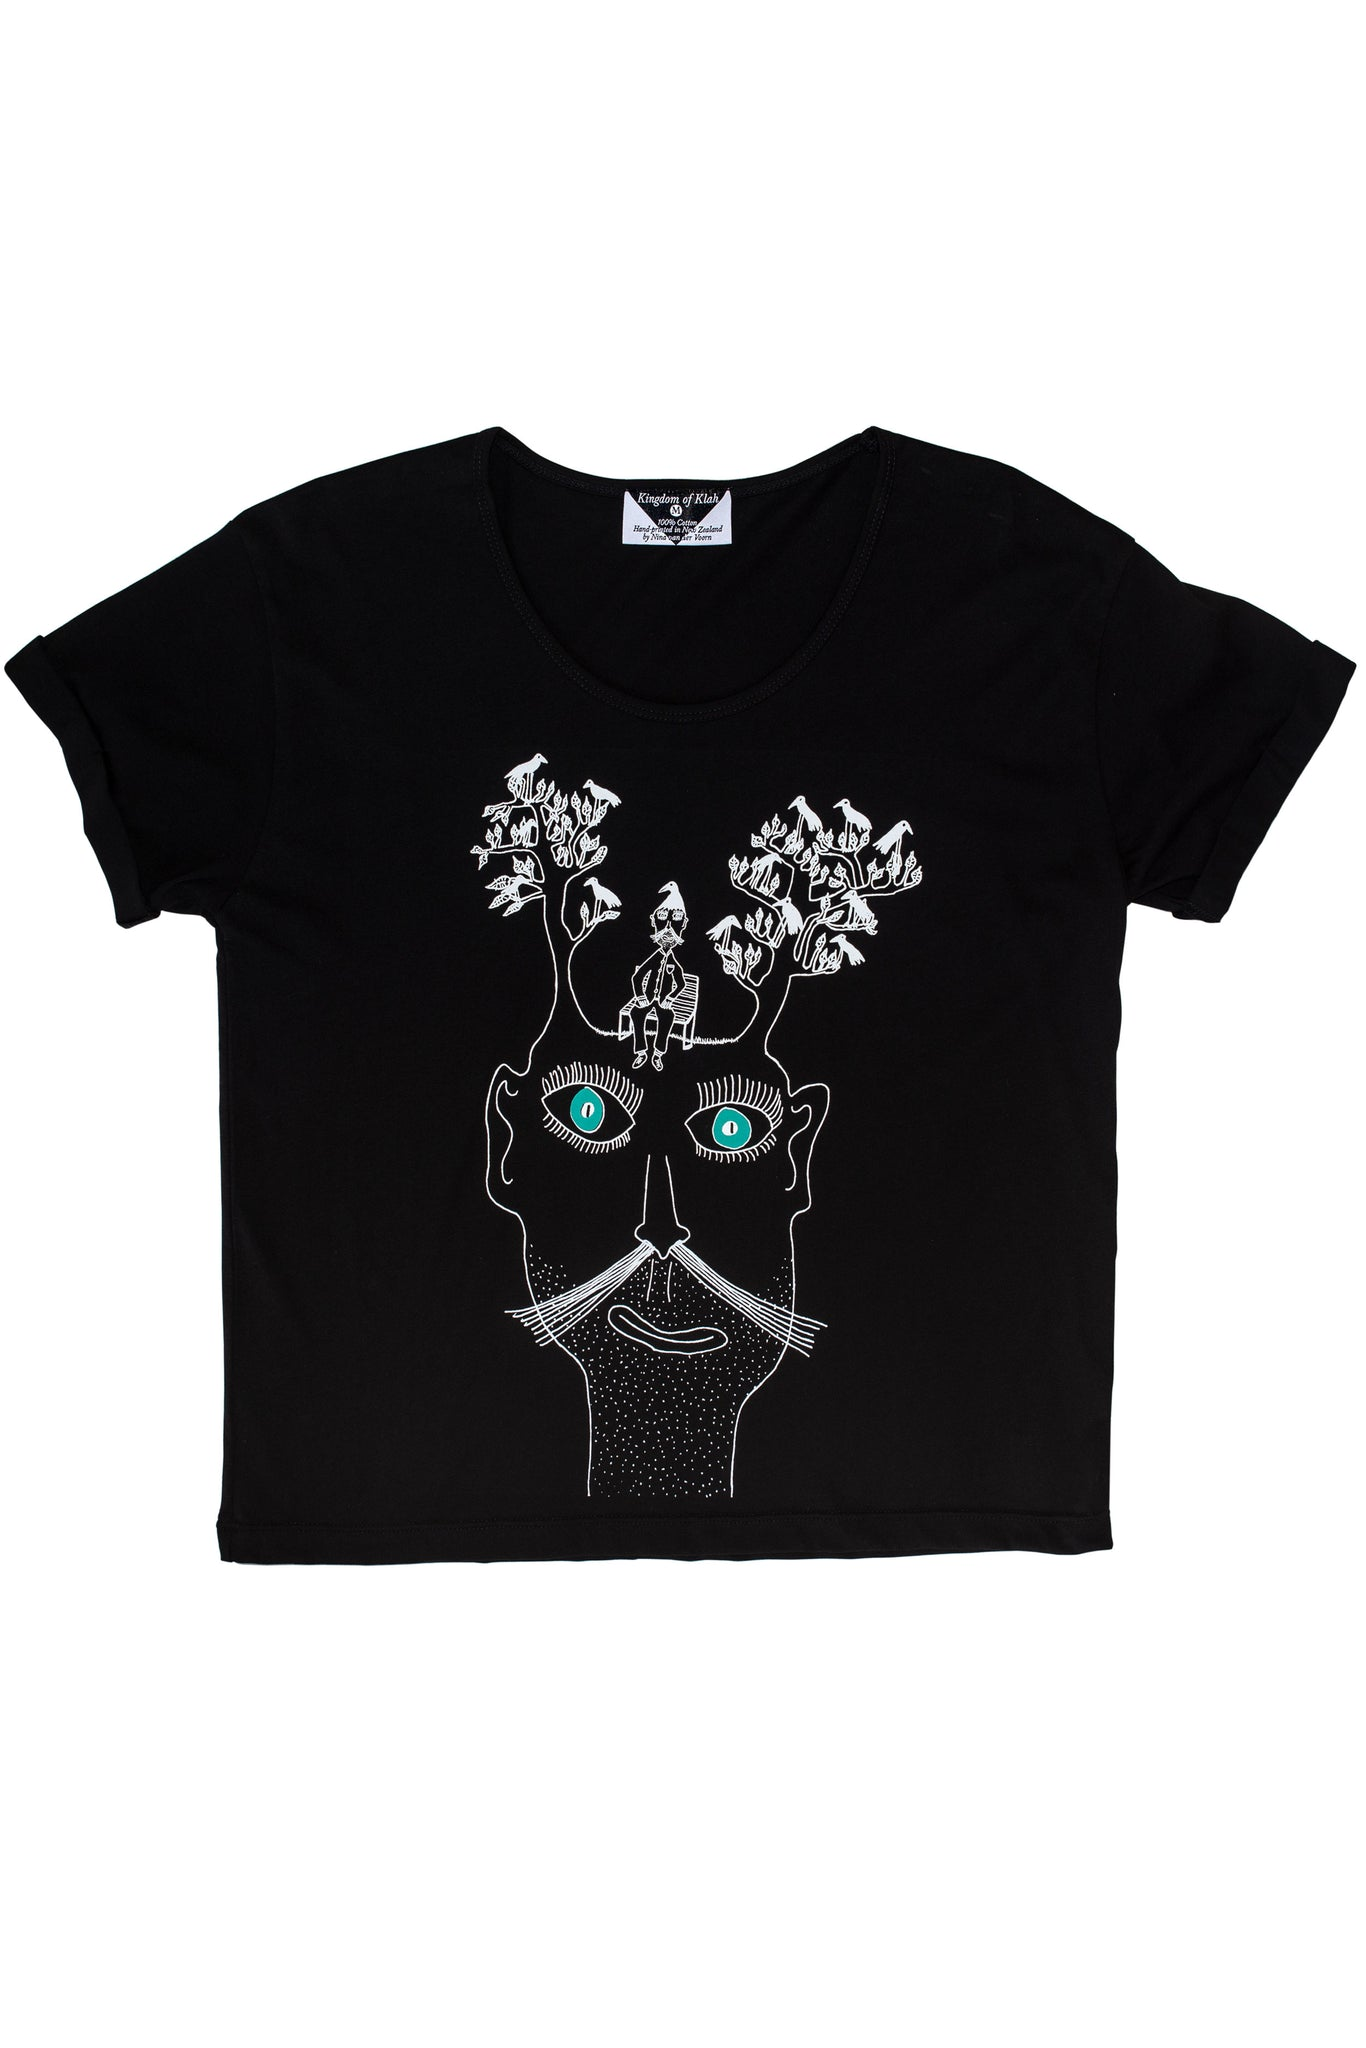 The Man Who Loved Trees Women's Baroness Tee